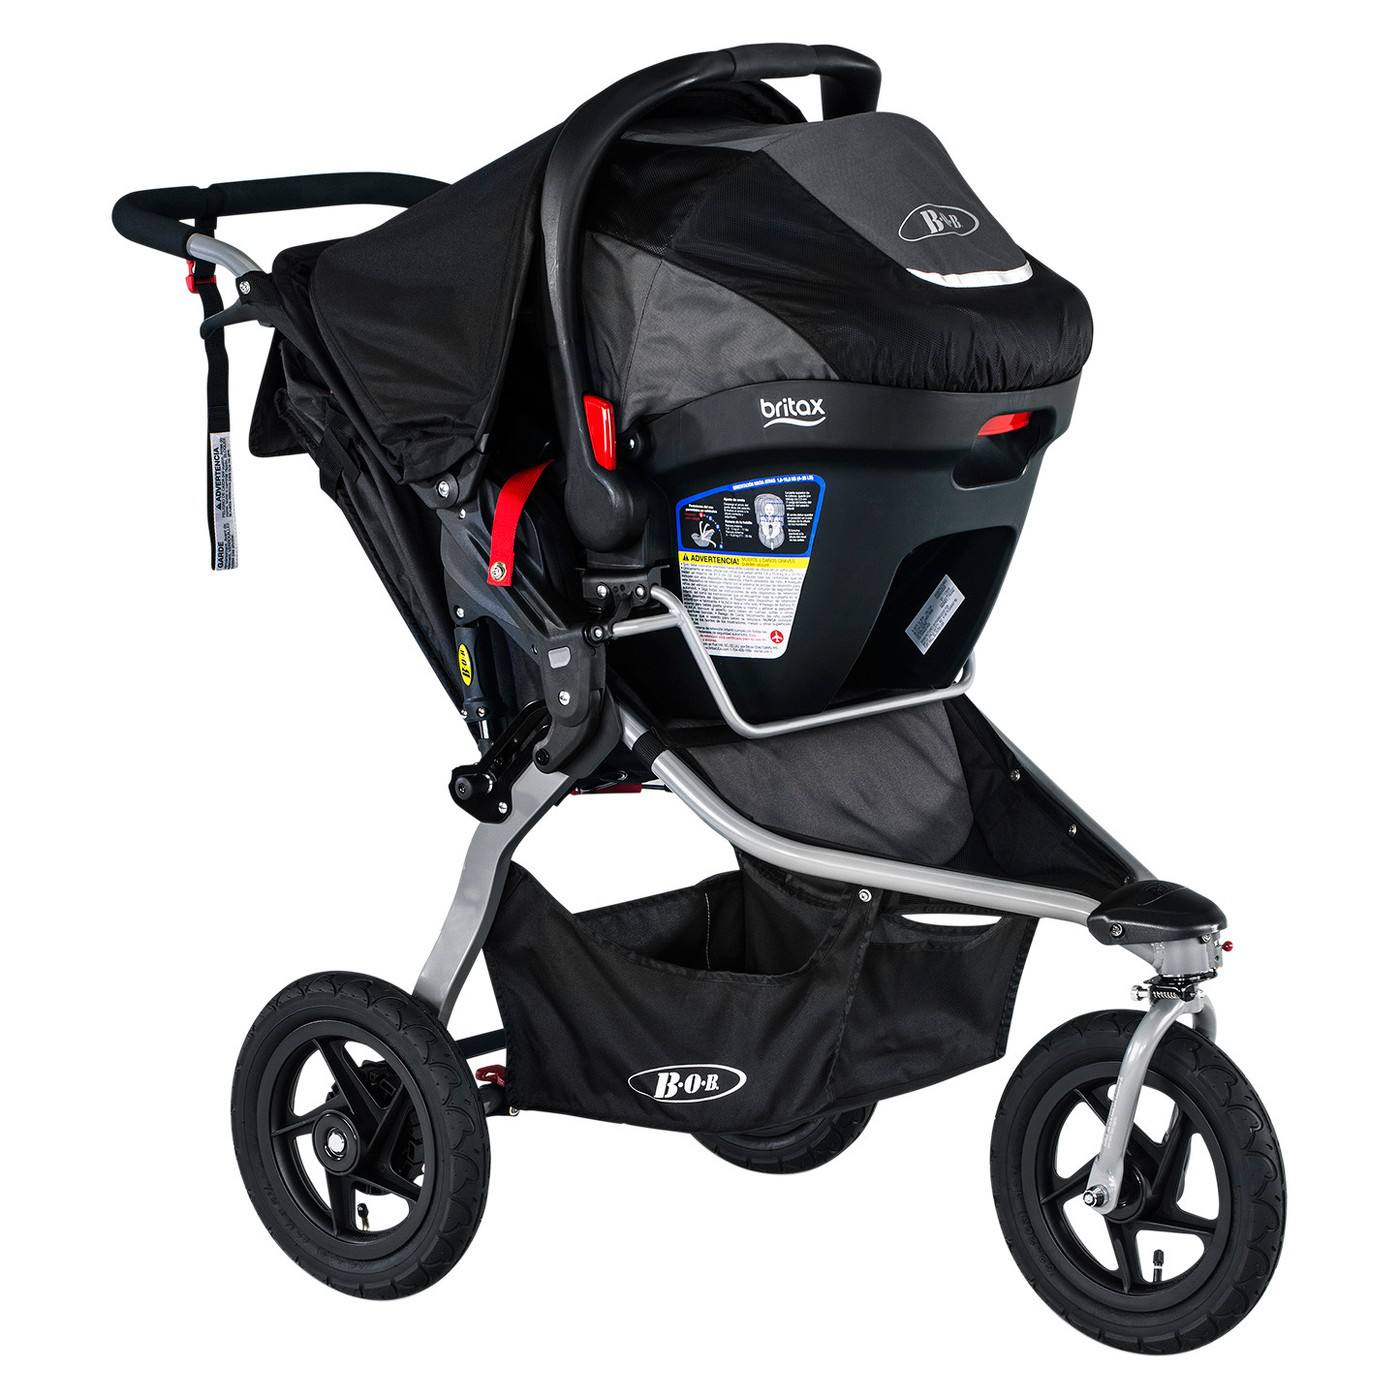 The 8 Best Stroller And Car Seat Combos Of 2020